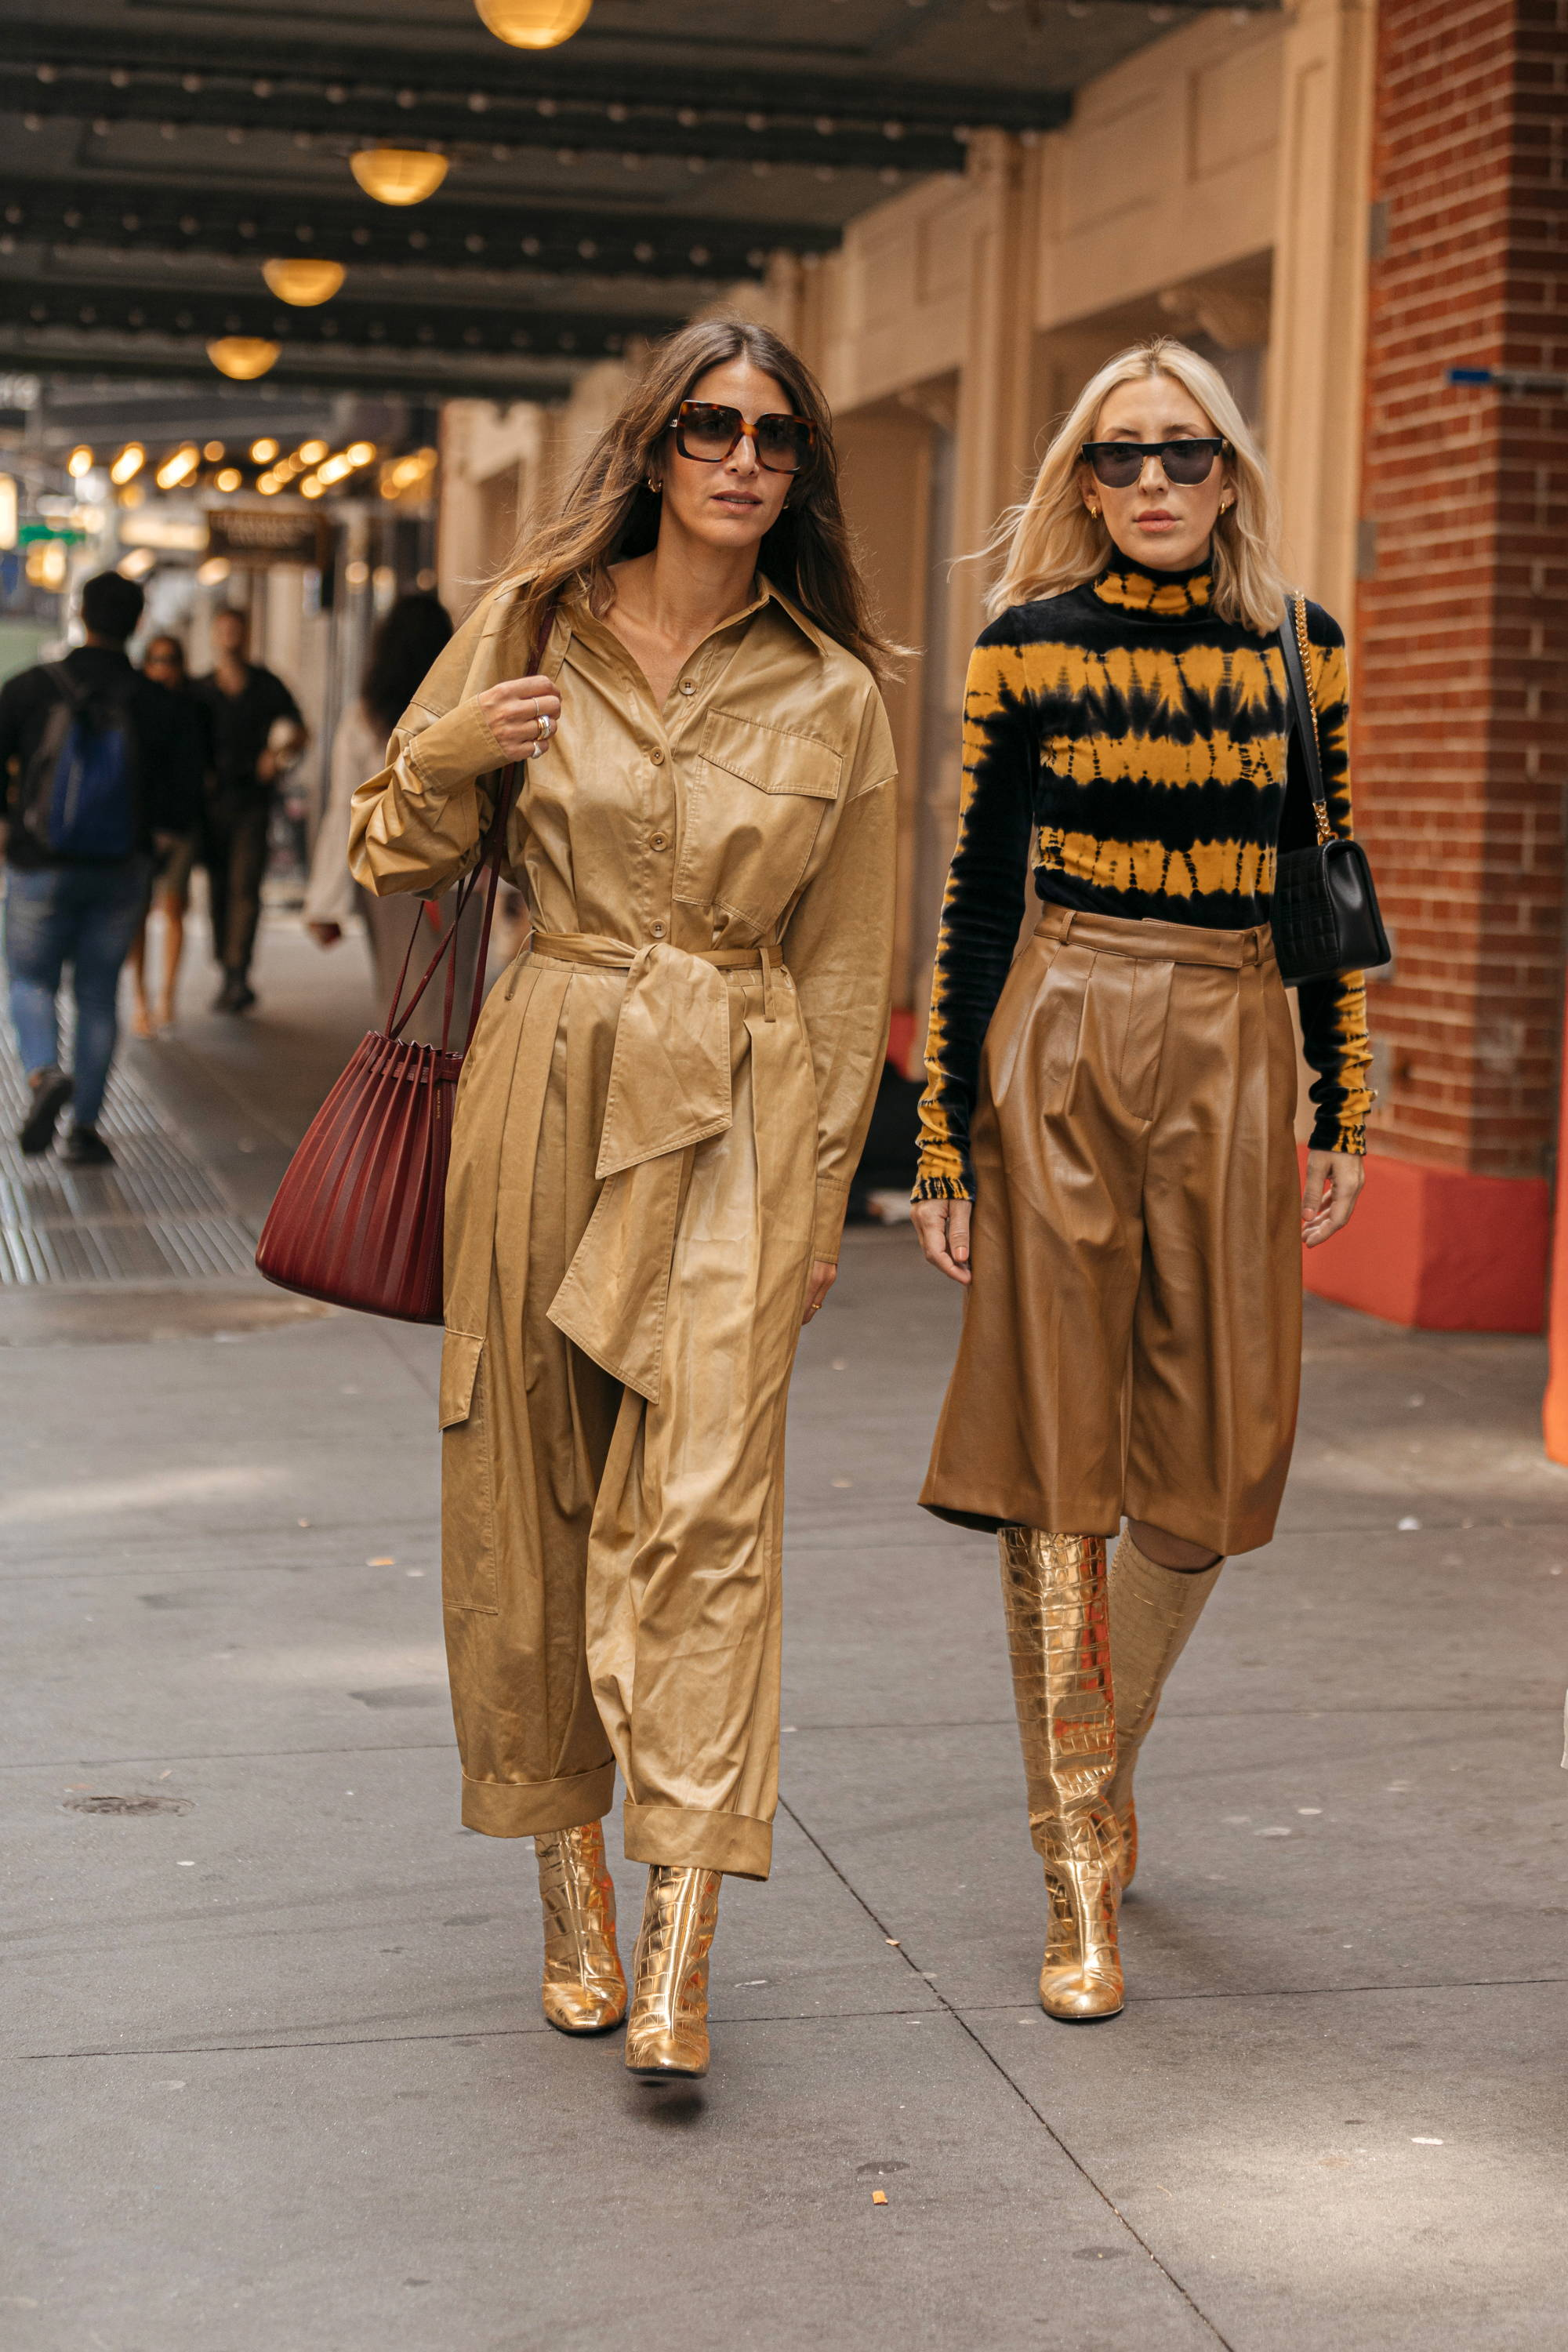 Spring 2020 street style image.